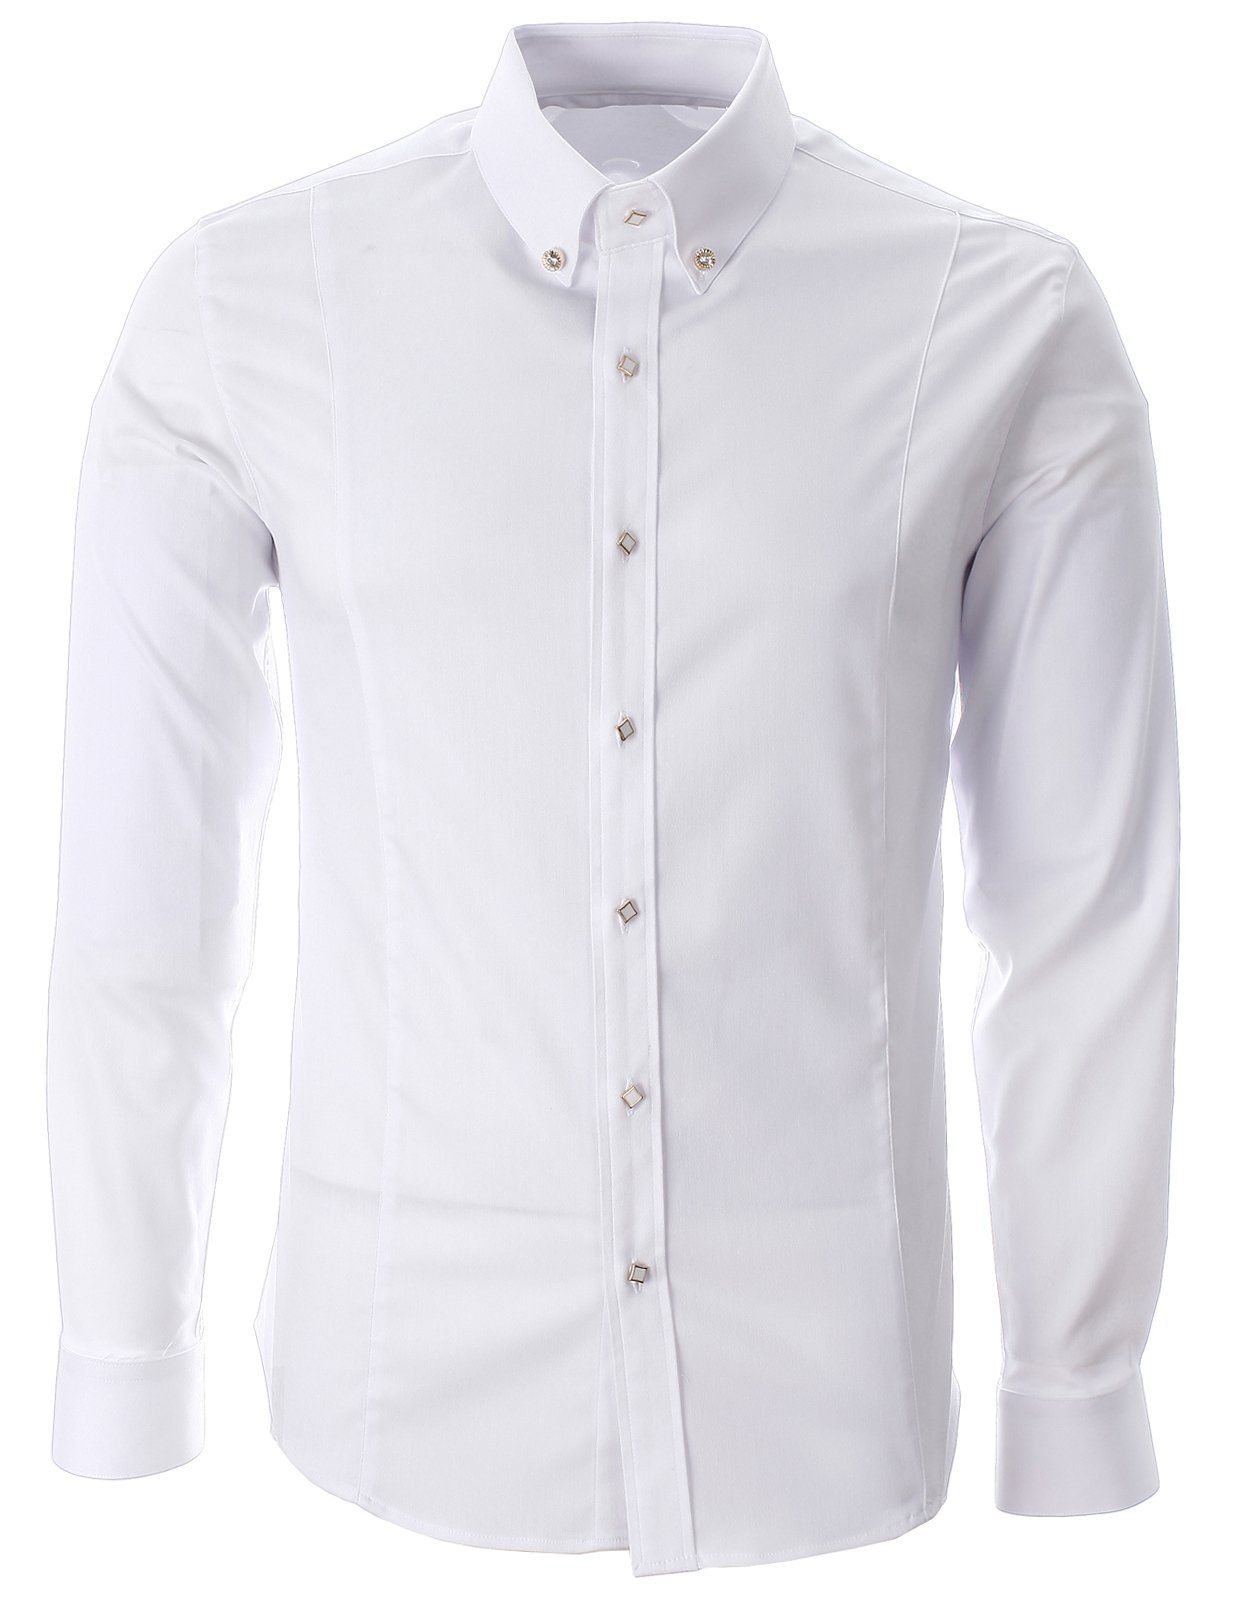 747fb1bb03c0 FLATSEVEN Mens Square Point Button Dress Shirt at Amazon Men's Clothing  store: